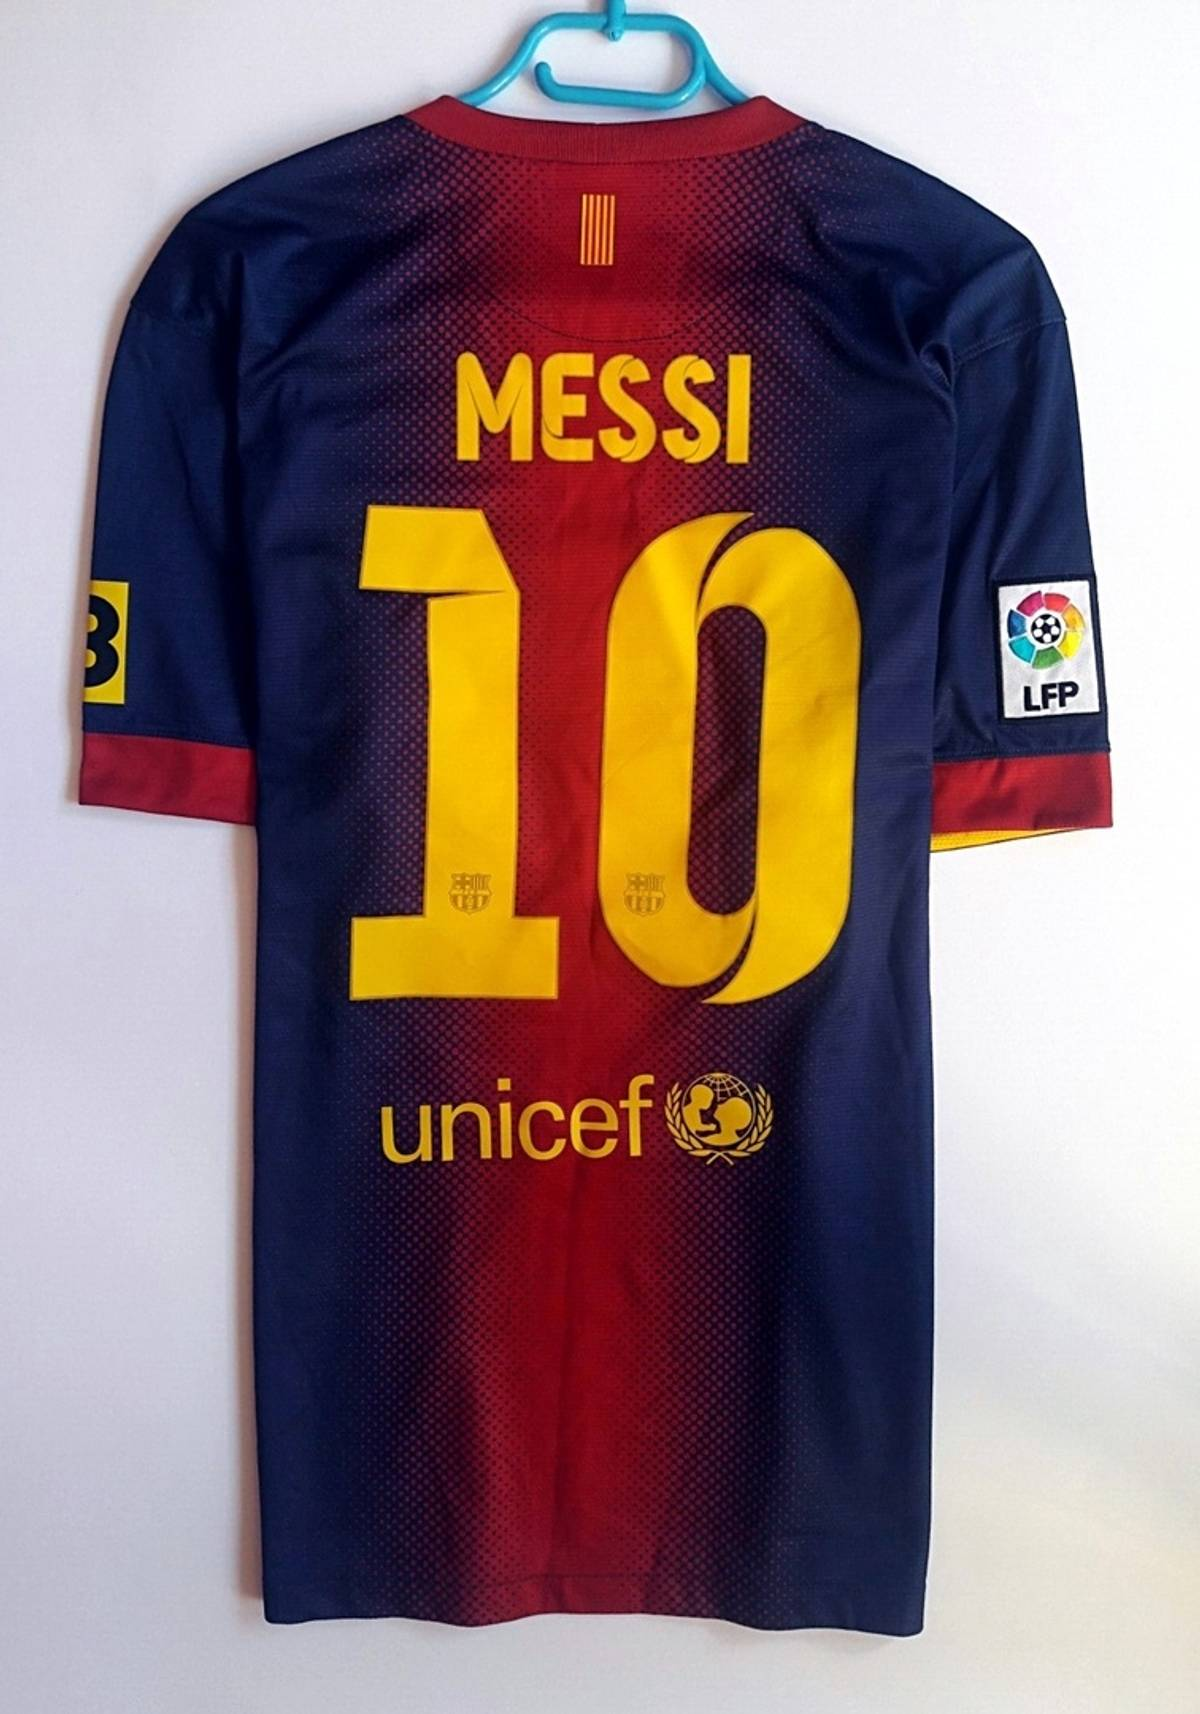 official photos 7c57f 7396f F.C. Barcelona × Nike Lionel Messi #10 Shirt Football Jersey Nike Barcelona  Barca Kit 2012 2013 2014 Home Size L $55